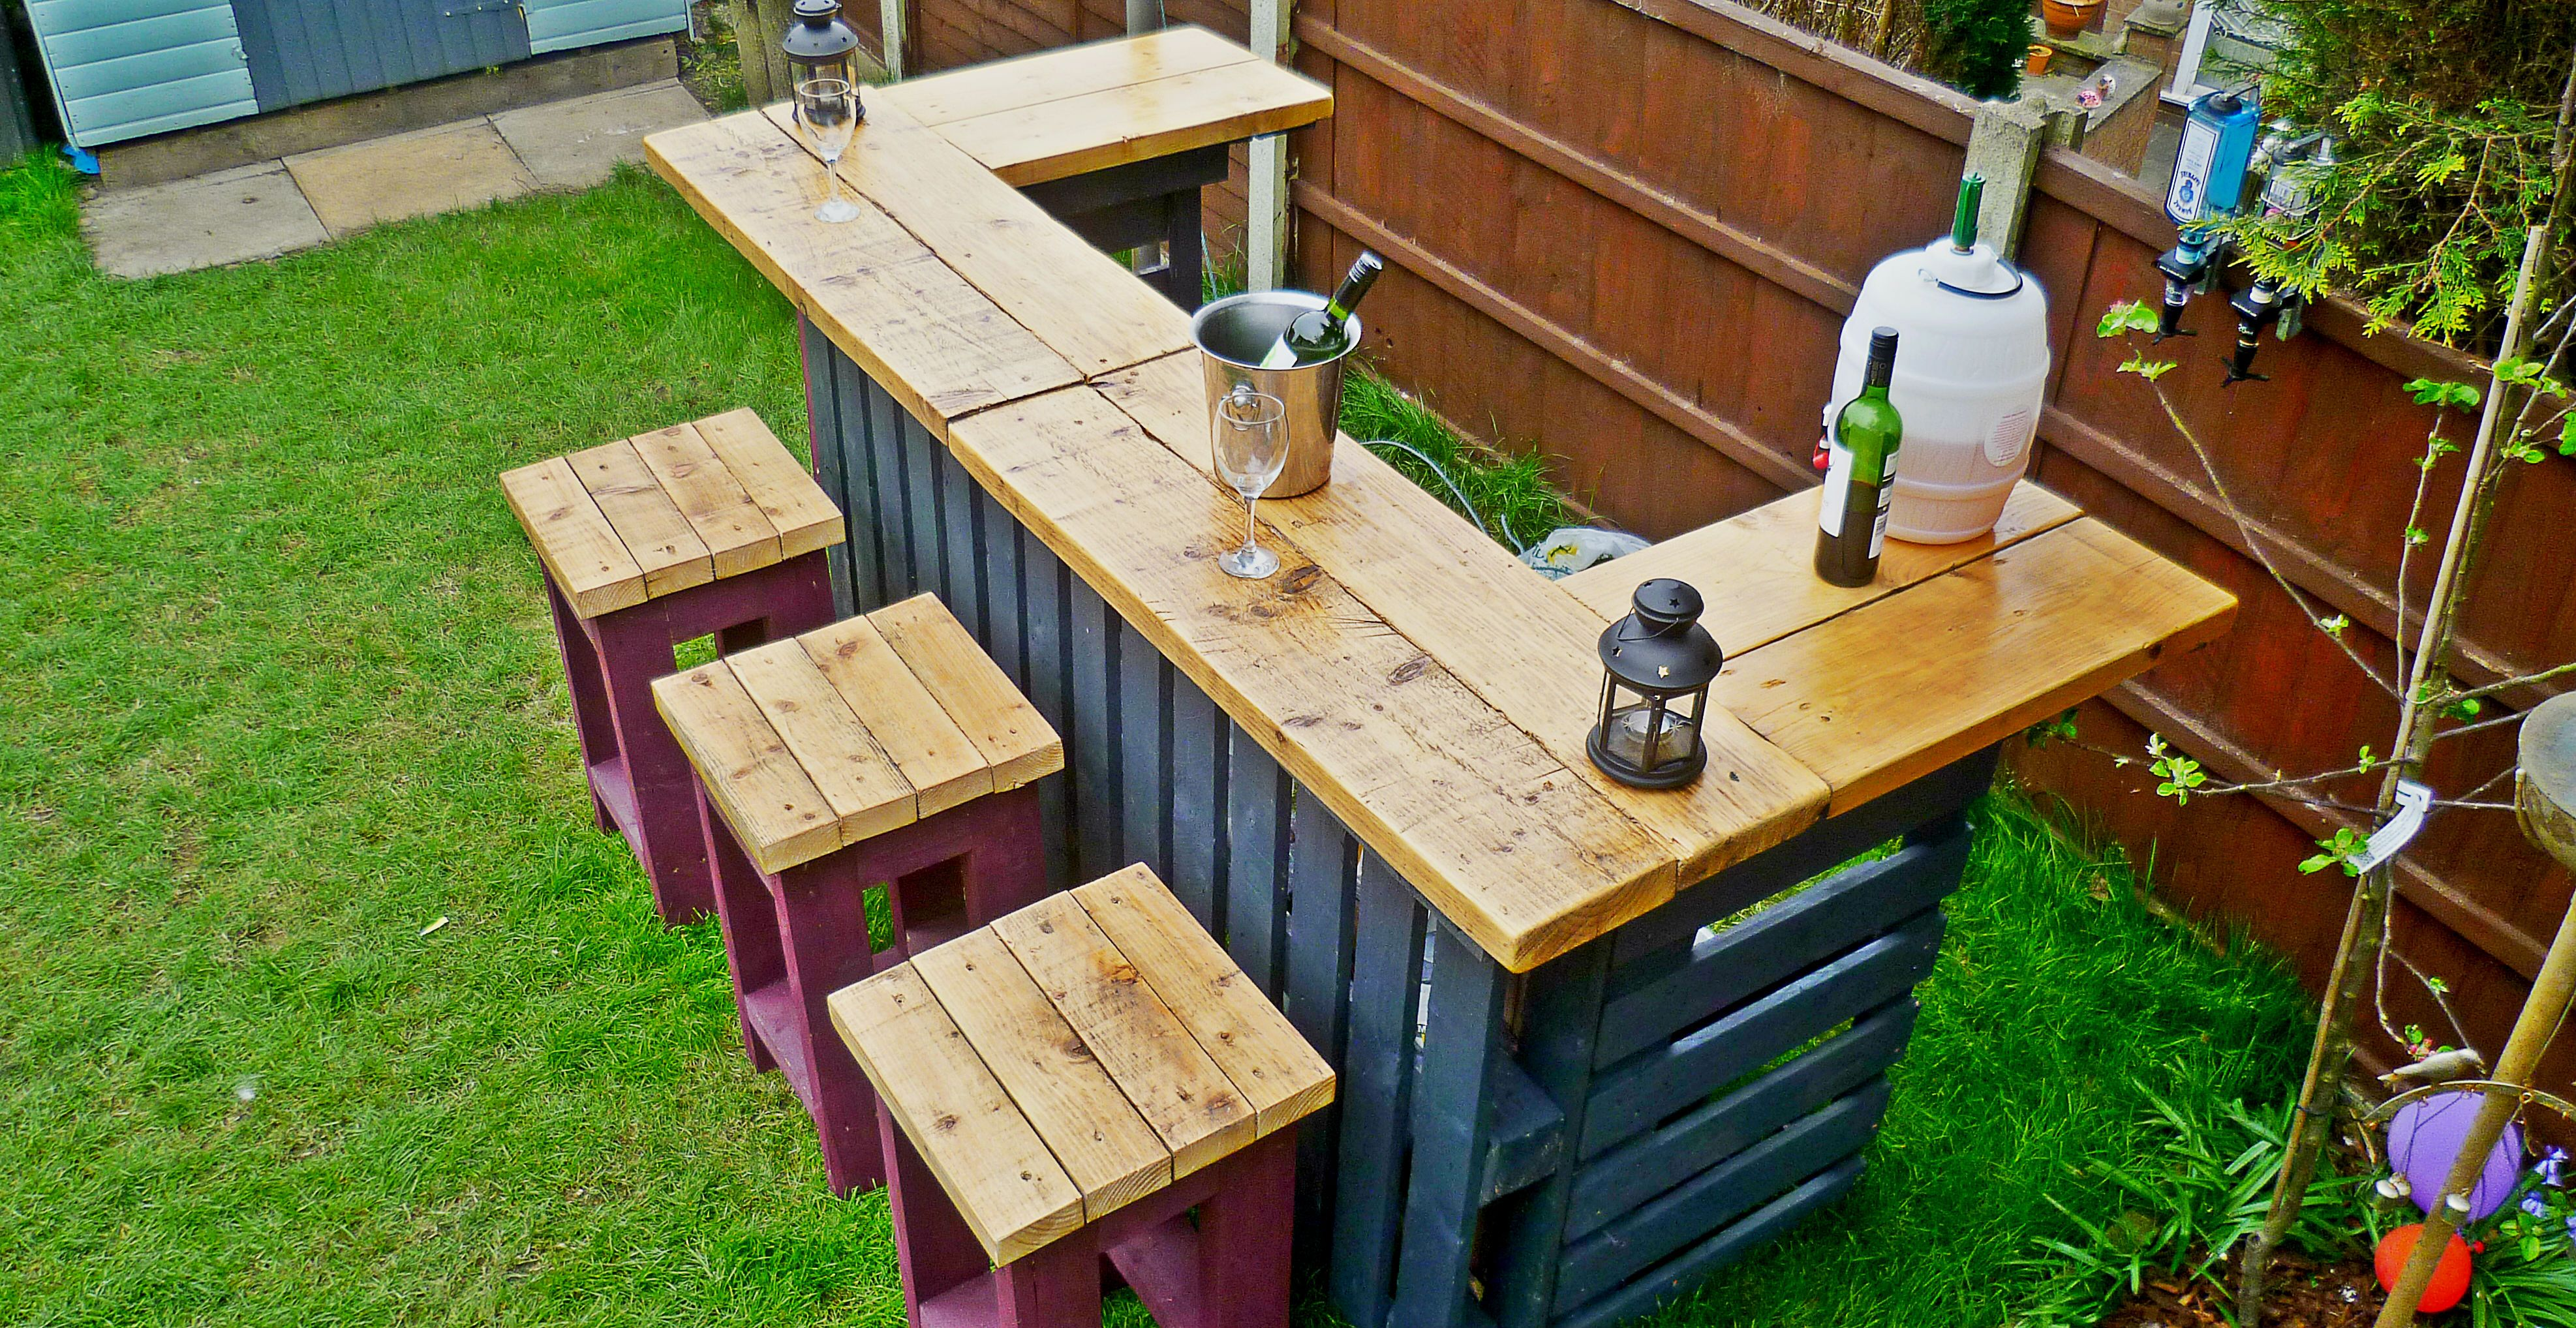 Green Thumb Print | Upcycled Furniture Handmade From Reclaimed Materials  This Outdoor Bar And Bar Stools